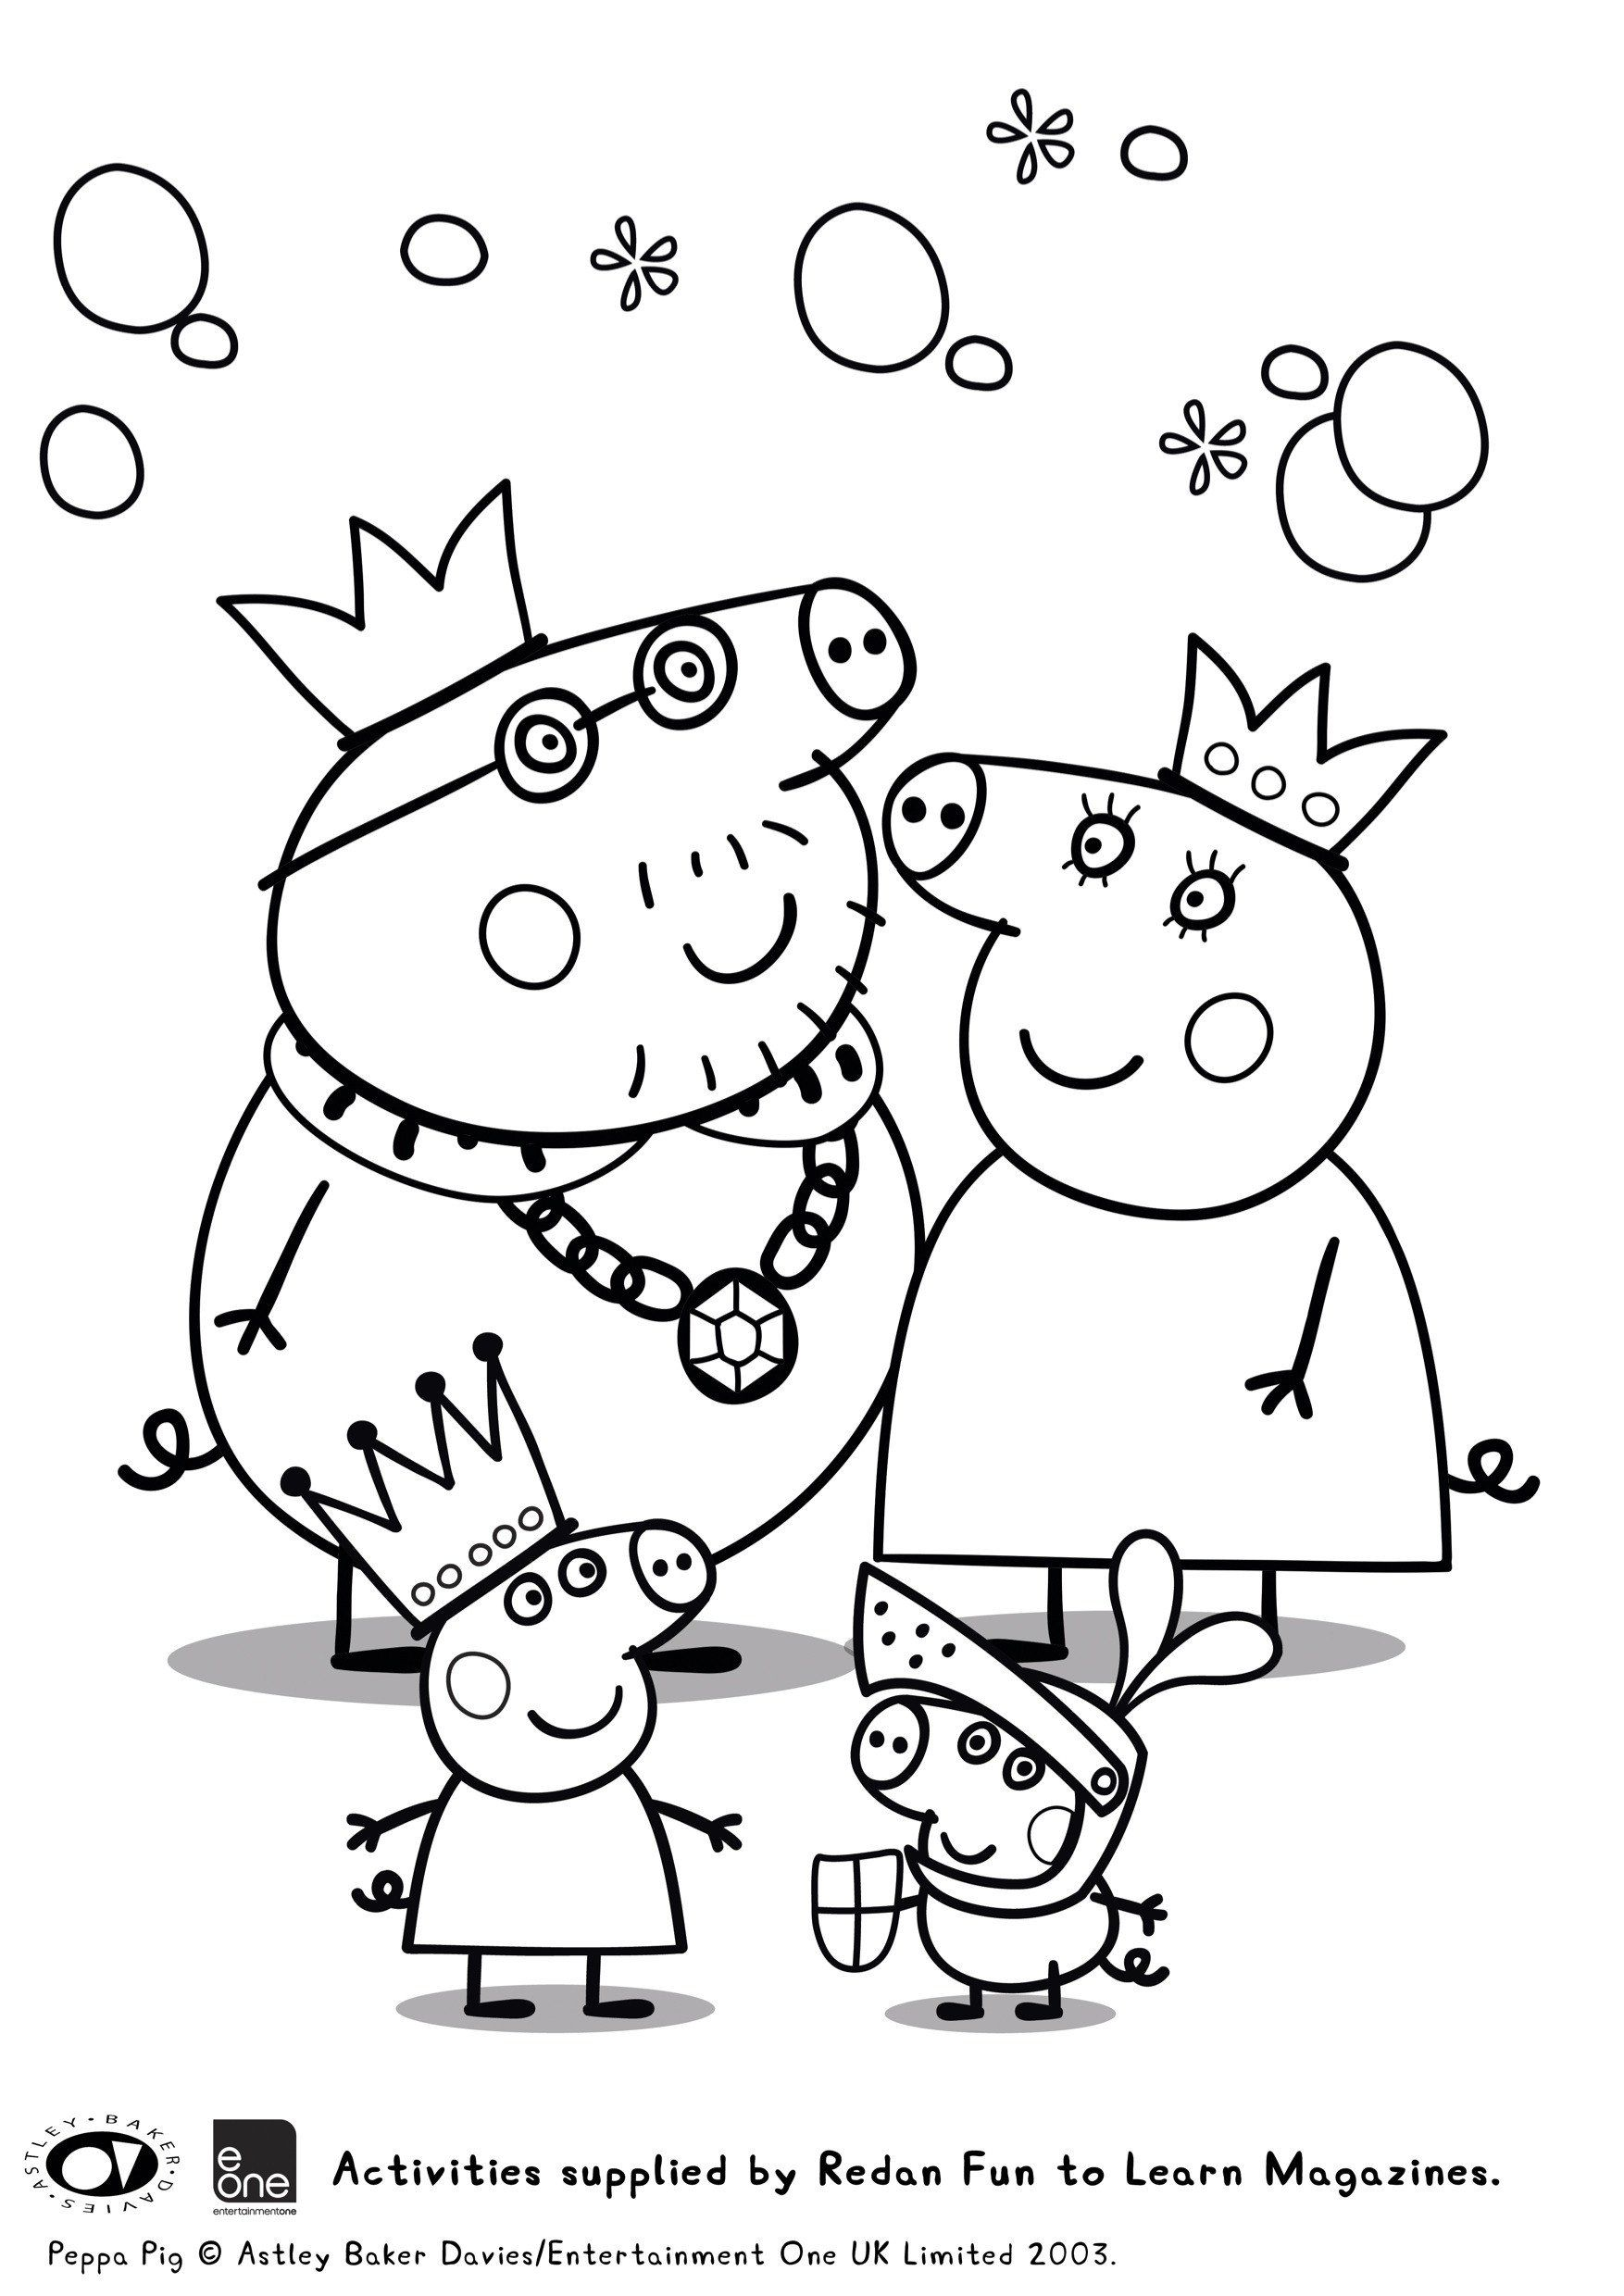 Peppa Pig Coloring Sheets Awesome Coloring Ideas Peppa Pig Coloring Book Printable Elegant Peppa Pig Coloring Pages Peppa Pig Colouring Family Coloring Pages